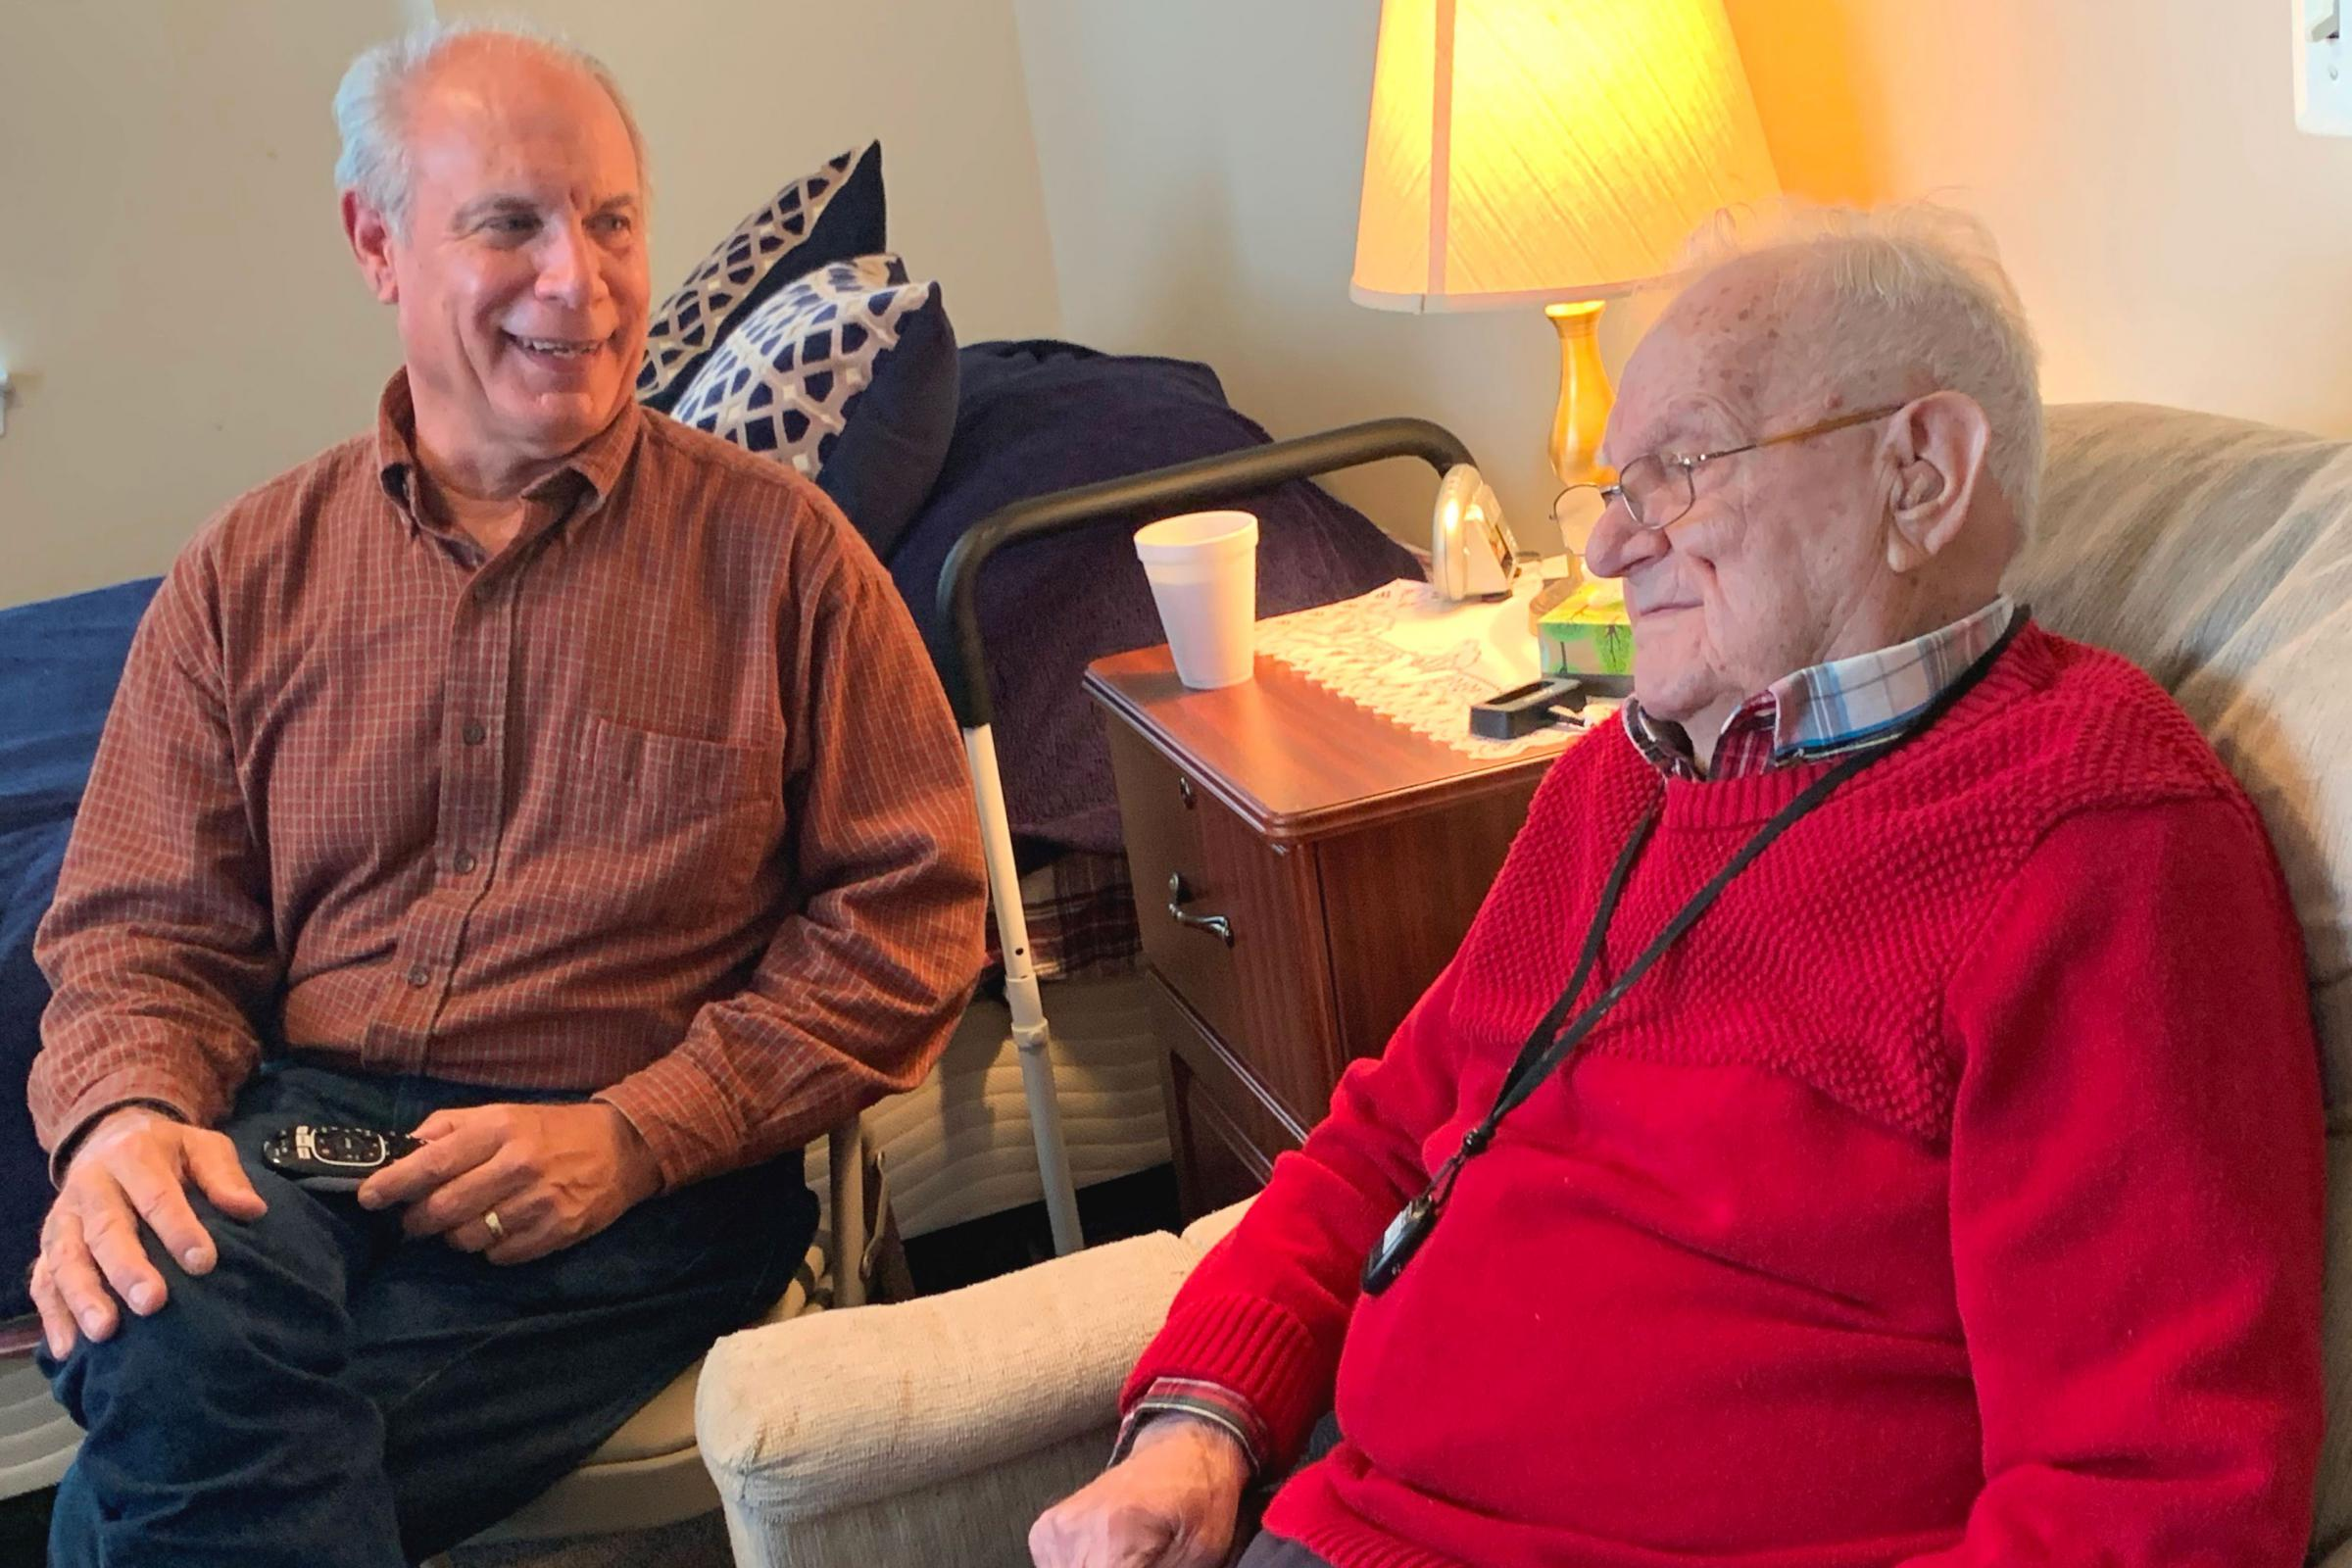 Caption: Gene Popiolek, 68, (left) visits his father Bernie, 95, at an assisted living facility outside Baltimore. Bernie, a WWII veteran, pays to live here with help from the VA's Aid and Attendance benefit., Credit: Stephanie Colombini / American Homefront